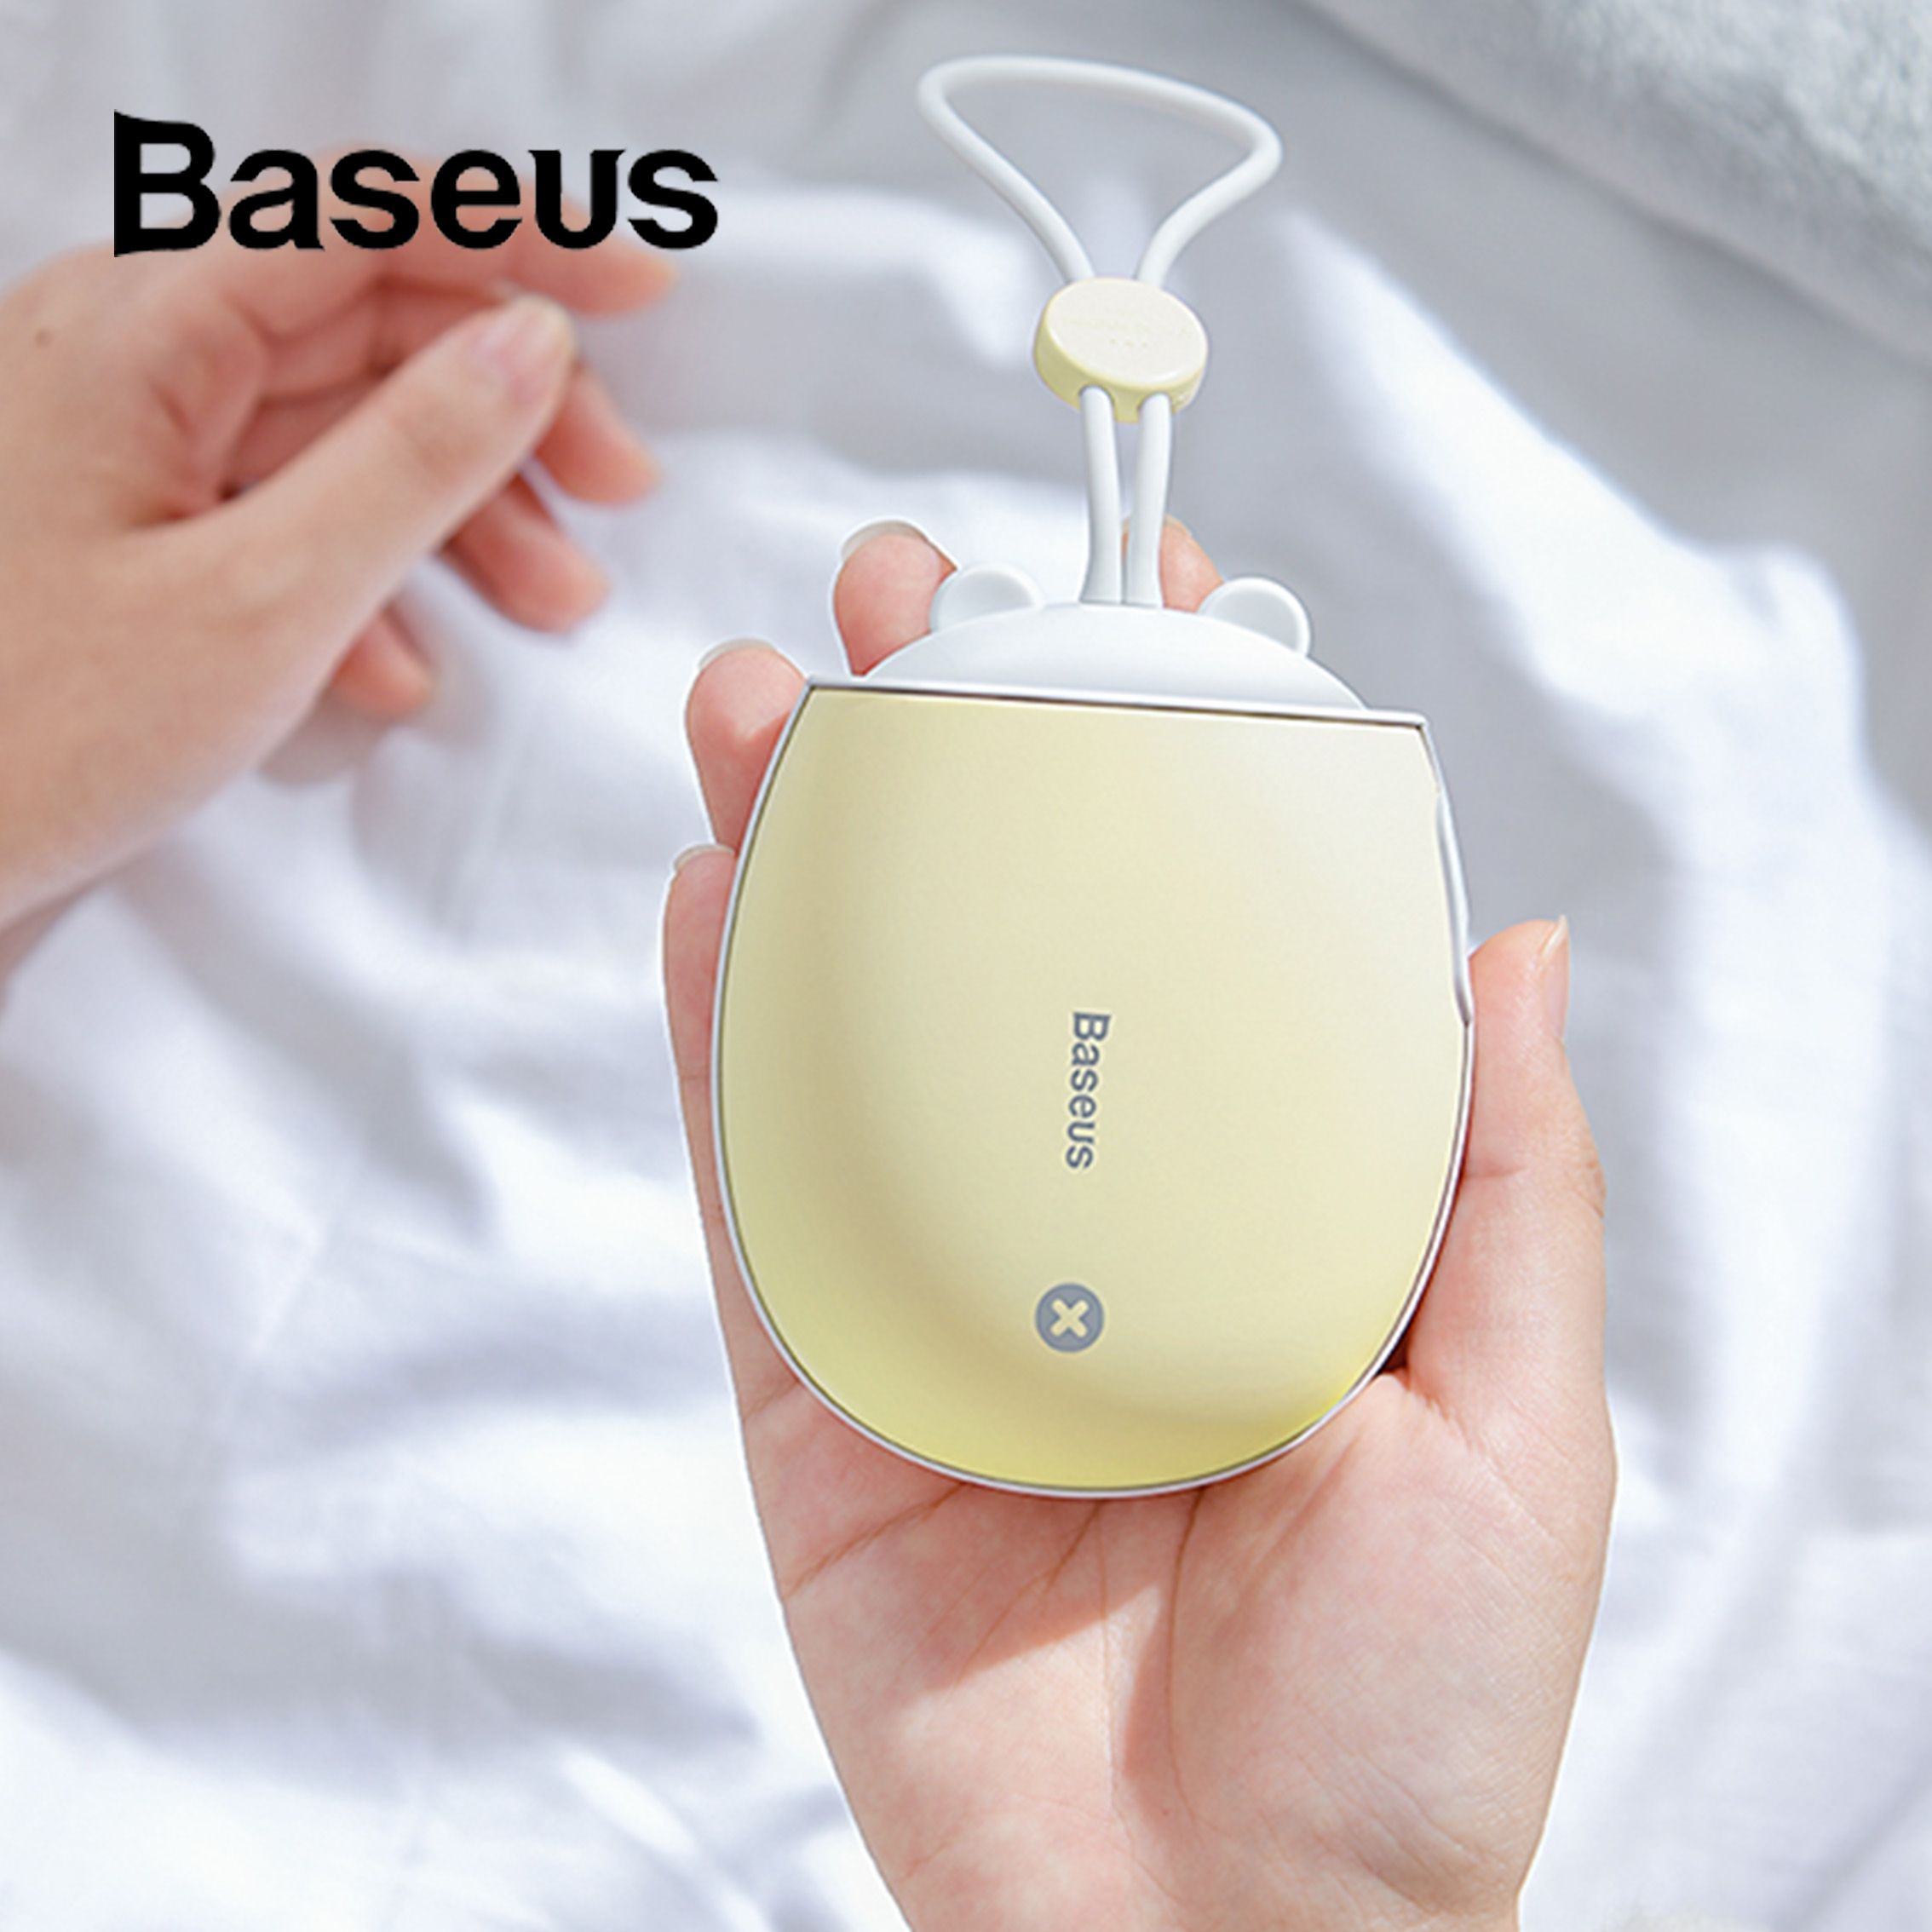 Baseus Mini Heater Portable Hand Warmer Rechargeable Handy Heater Pocket 4000 MAh Powerbank USB Night Light Home Travel Heating